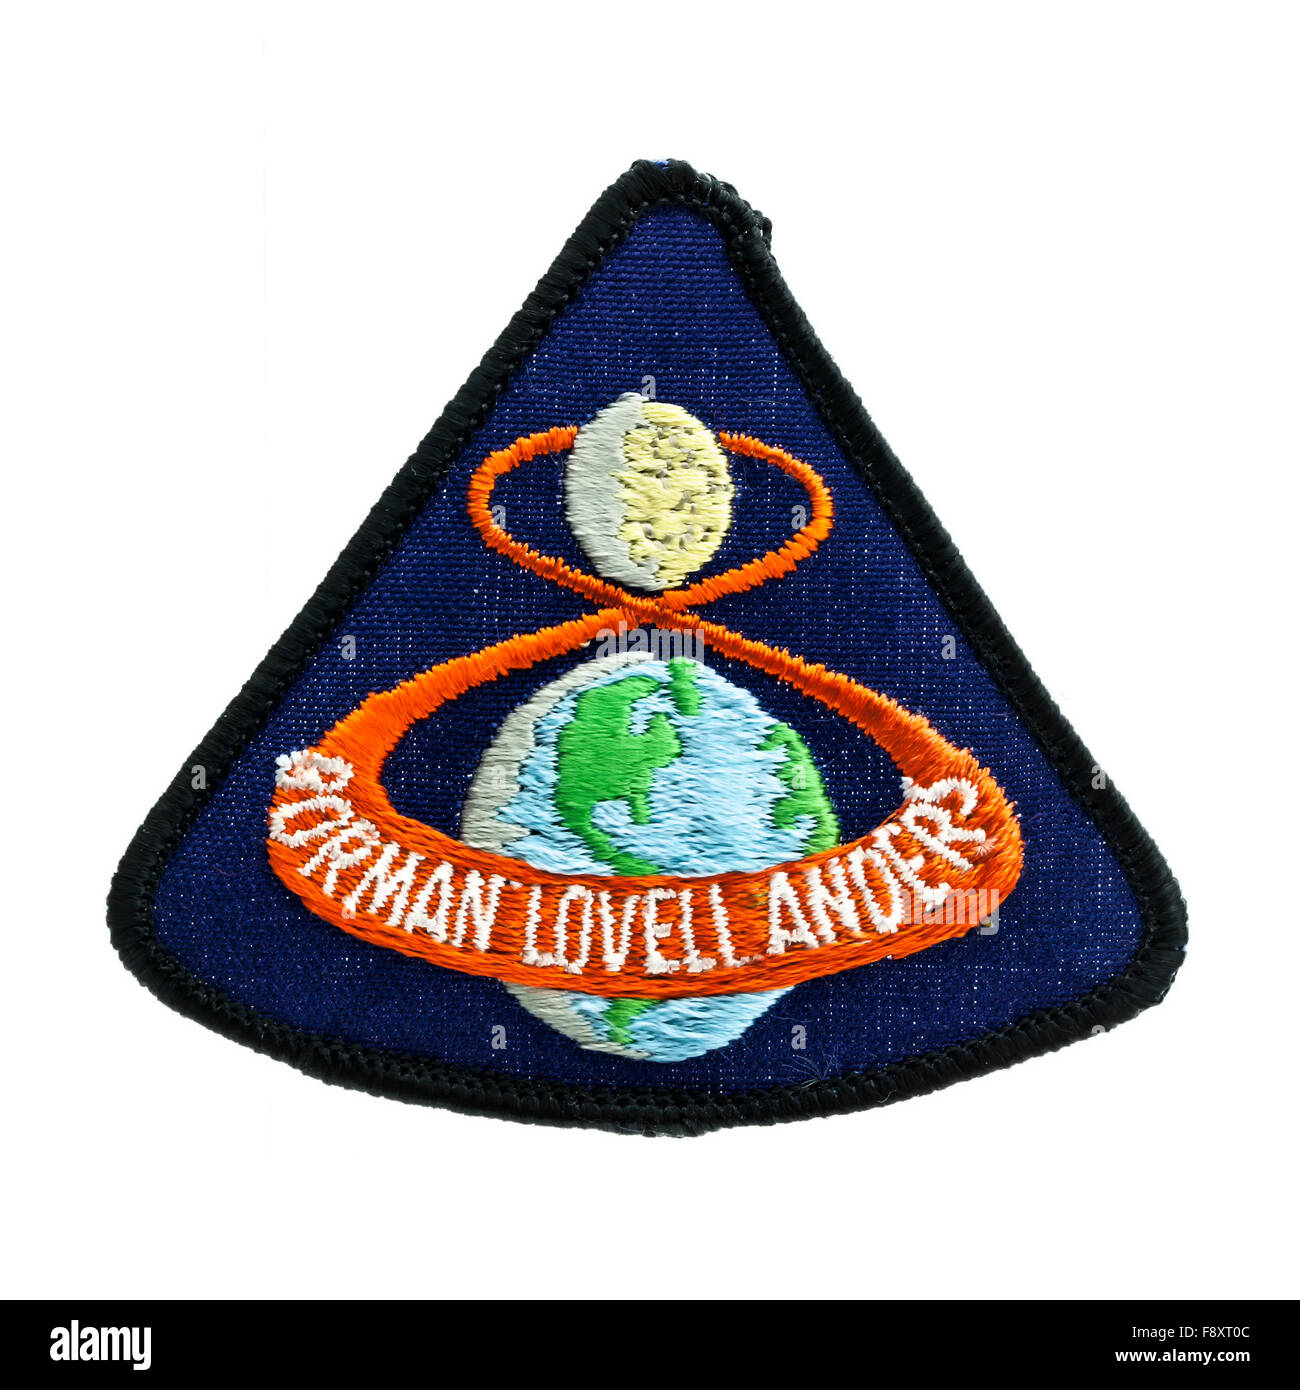 Apollo 8 Mission Badge from 1968 Moon flight on a White Background - Stock Image